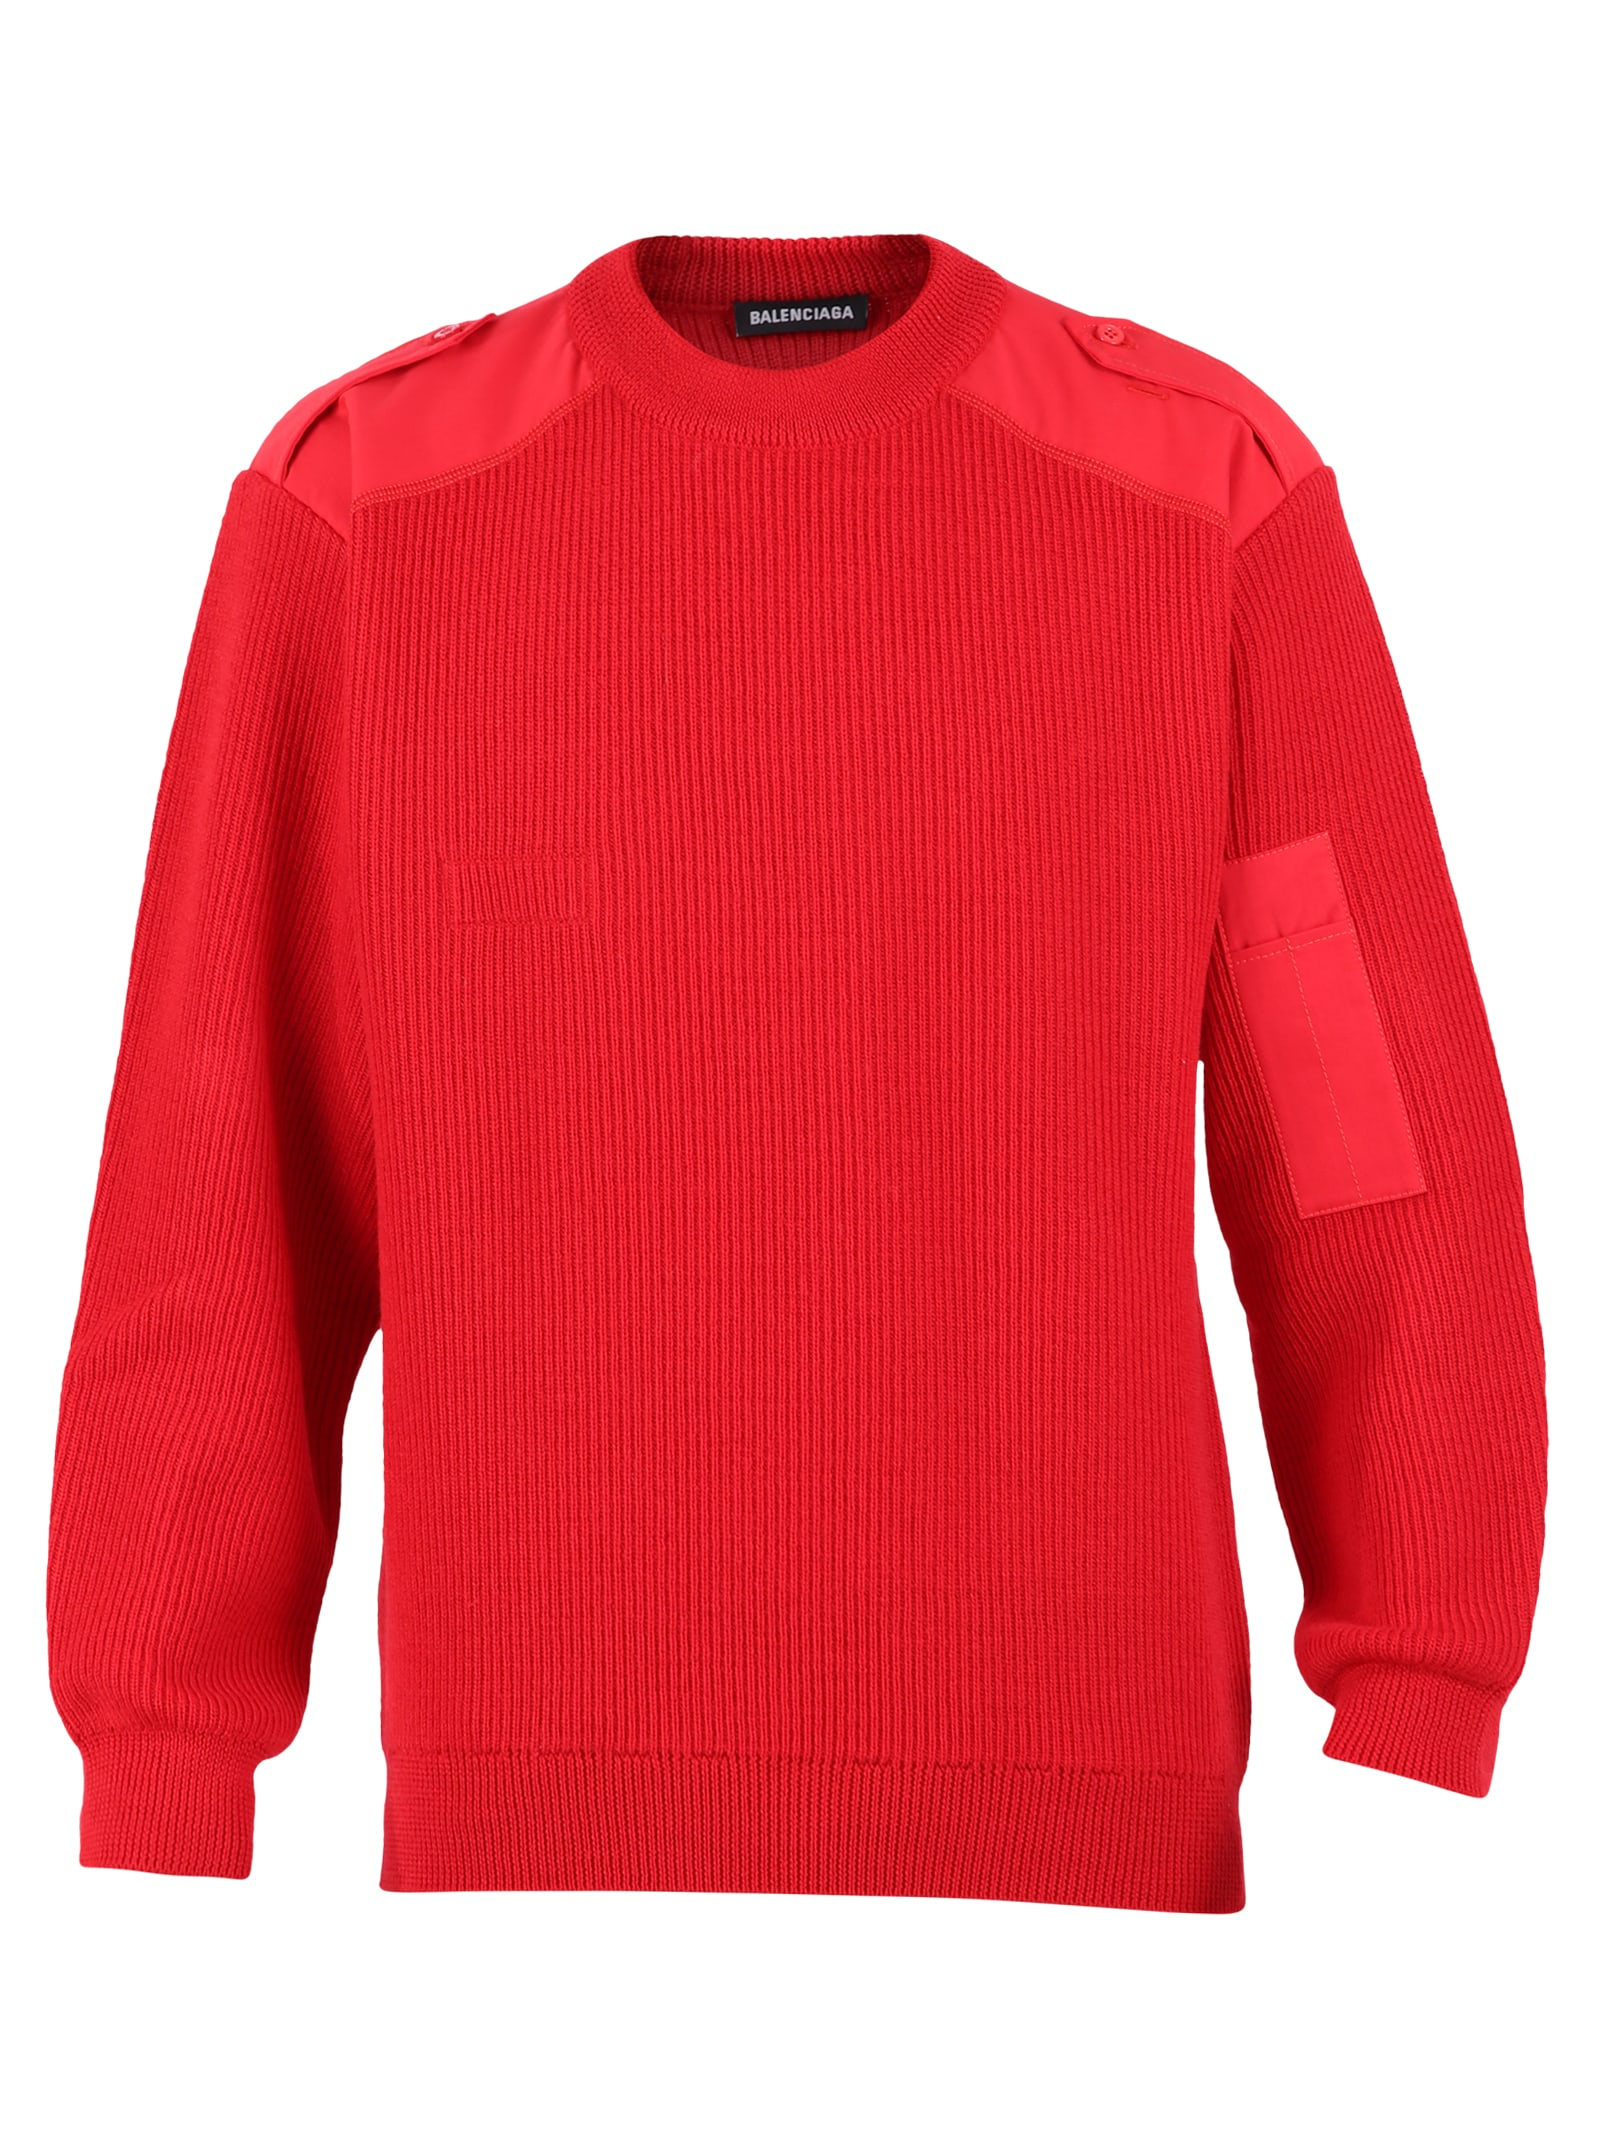 Balenciaga Branded Sweater